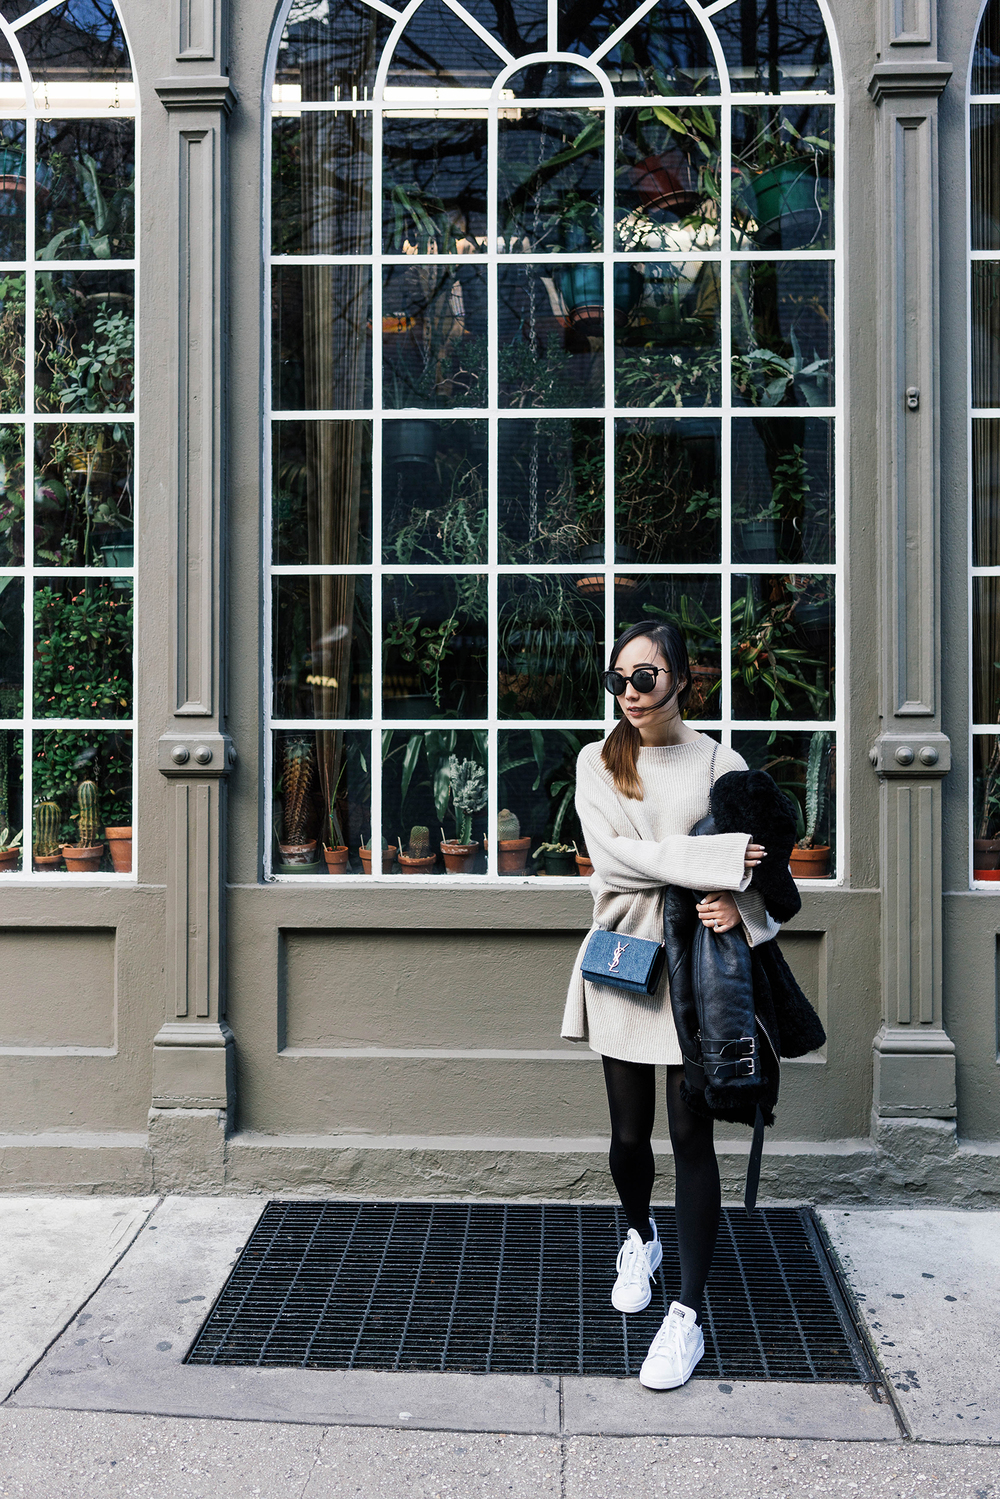 Acne Studios Coat, The Row Sweater, Saint Laurent Bag, Fendi Sunglasses, Adidas Sneakers, Movado Watch, Euna Joyce Jewelry, AVEC New York Jewelry